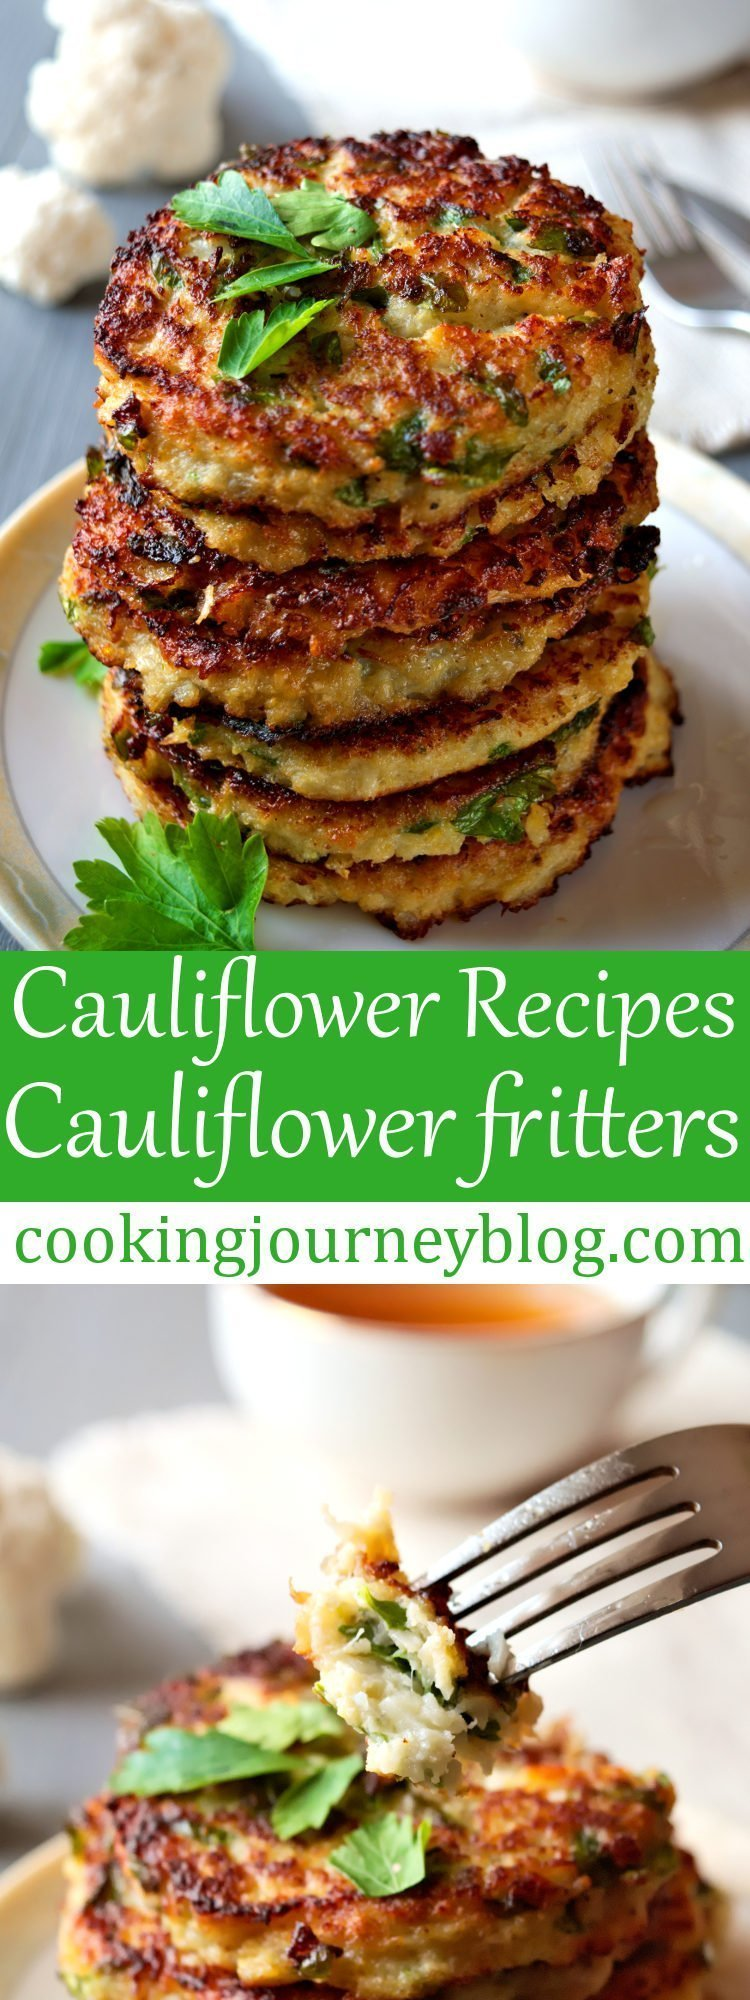 Cauliflower fritters – best cauliflower recipe for healthy breakfast. You need no milk, no sugar to make this easy pancake recipe tasty! This is one of breakfast ideas for kids, that you should try. Learn how to make these cauliflower pancakes from scratch!